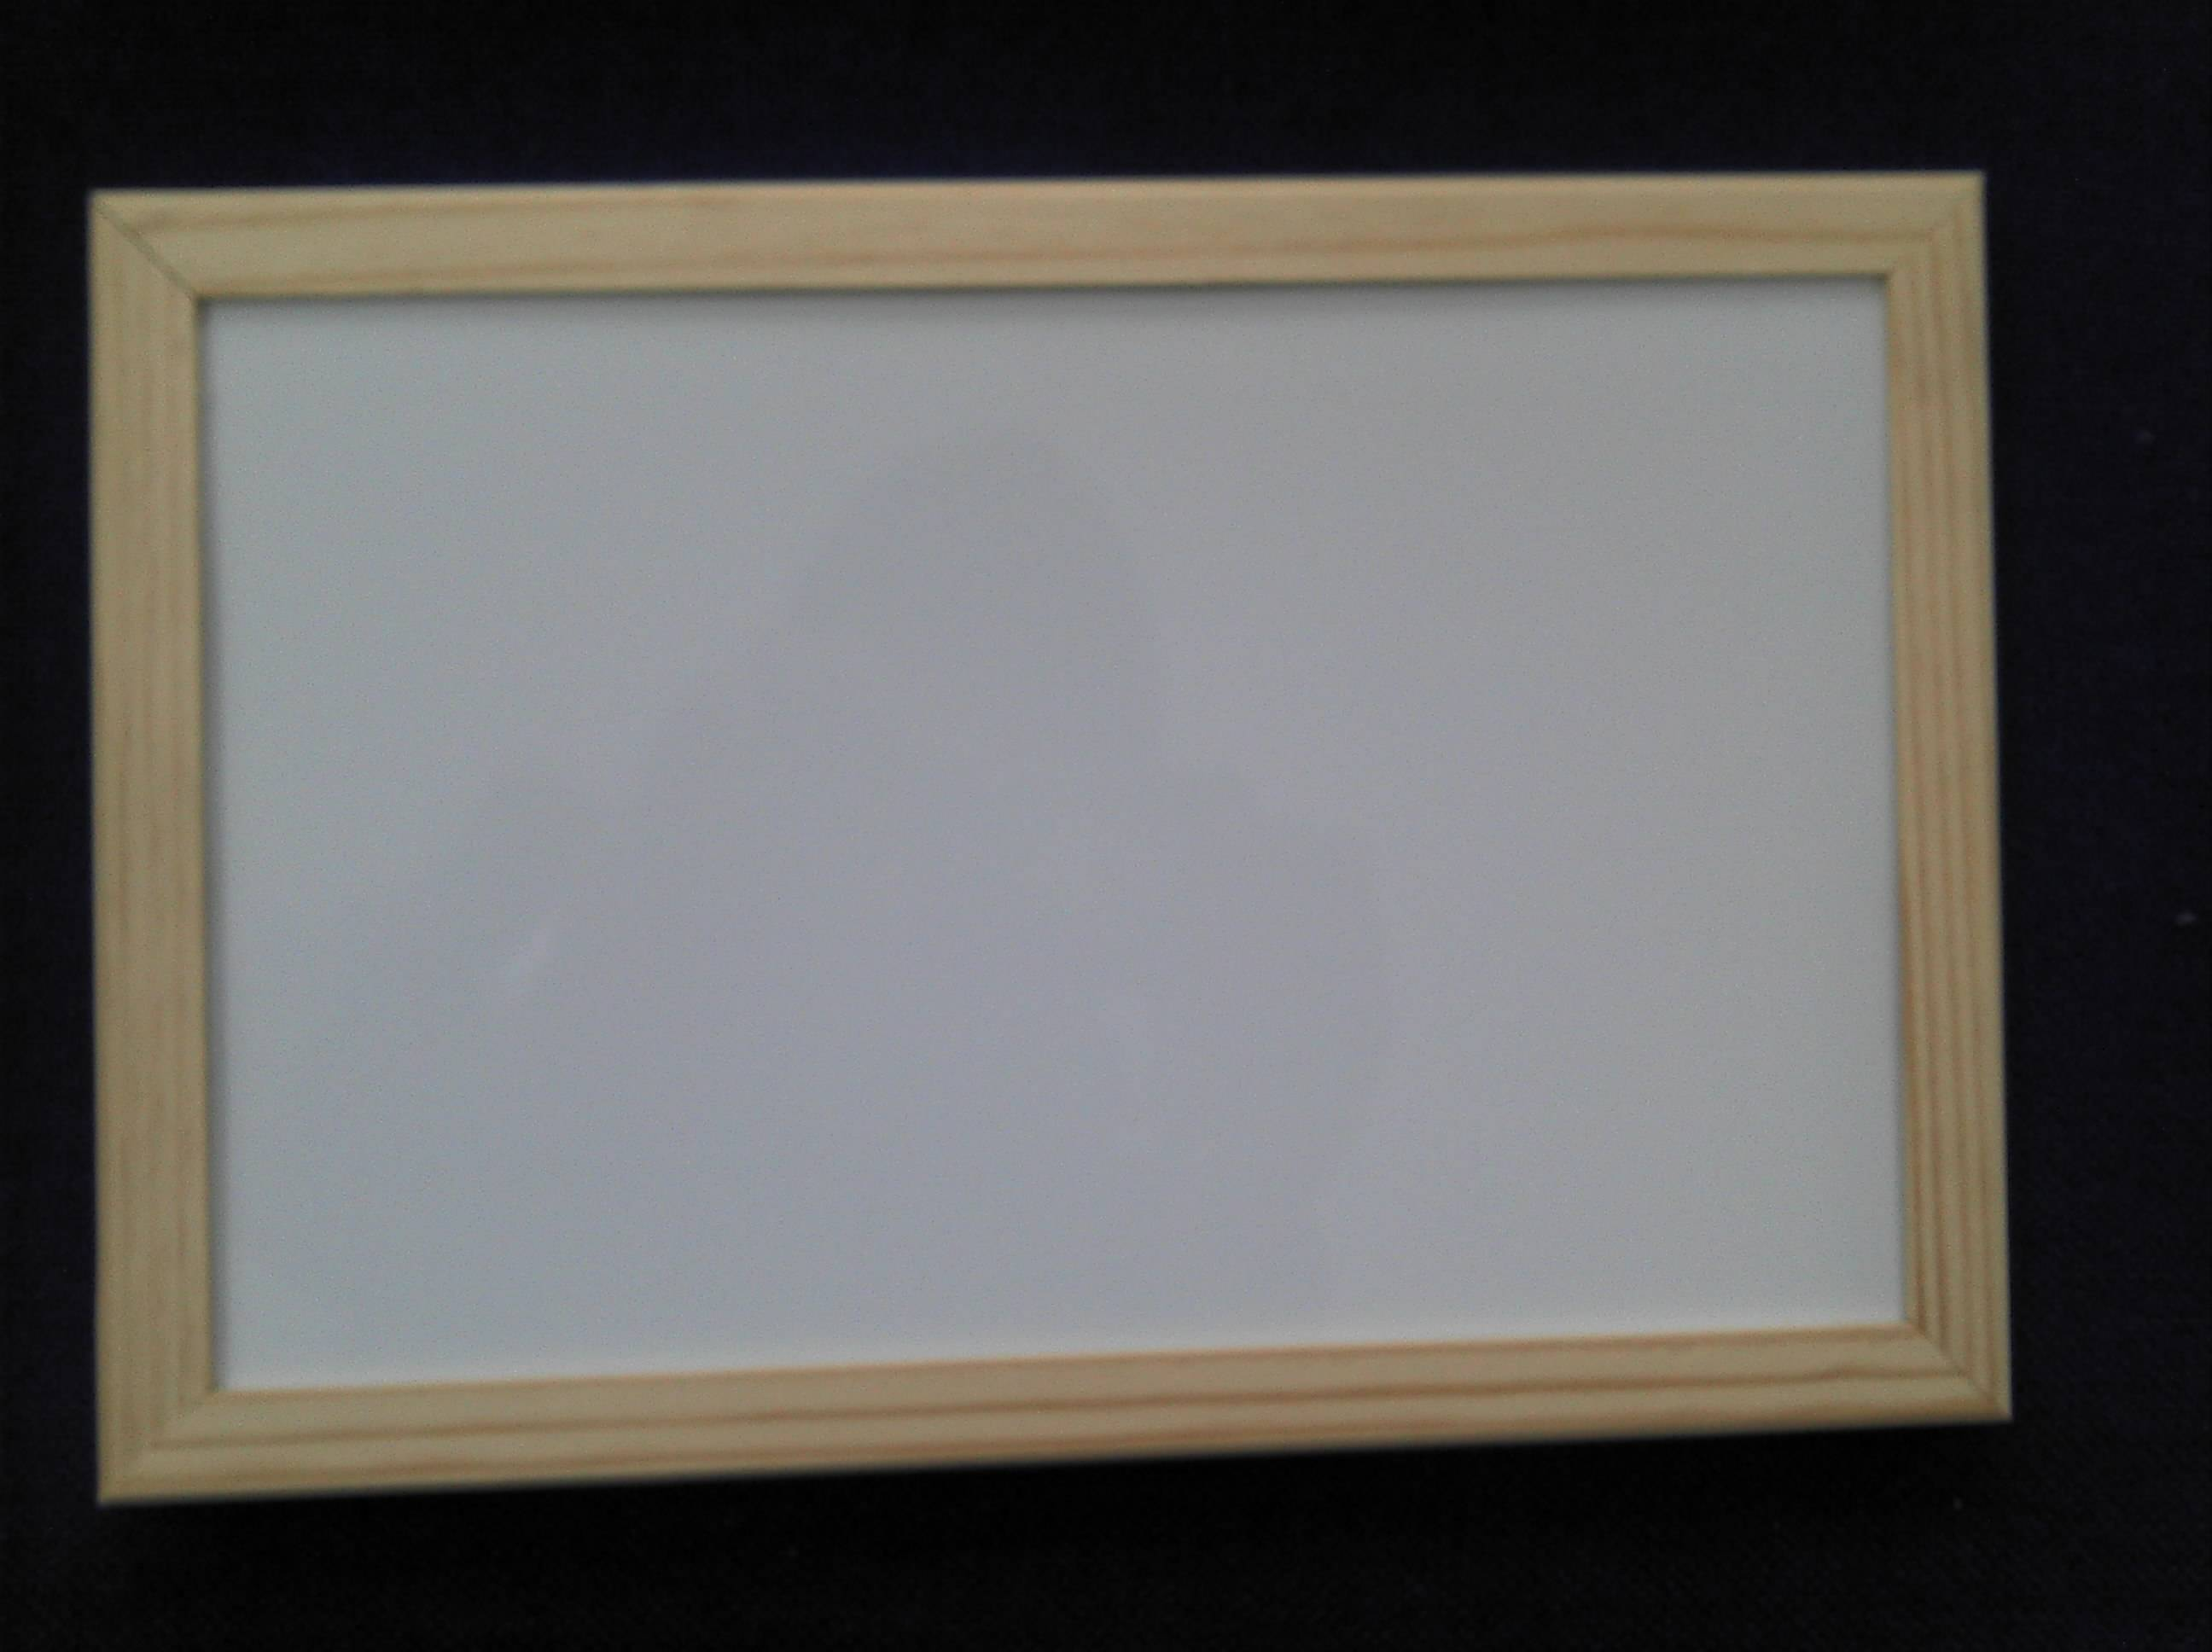 magnetic white board in wooden frame